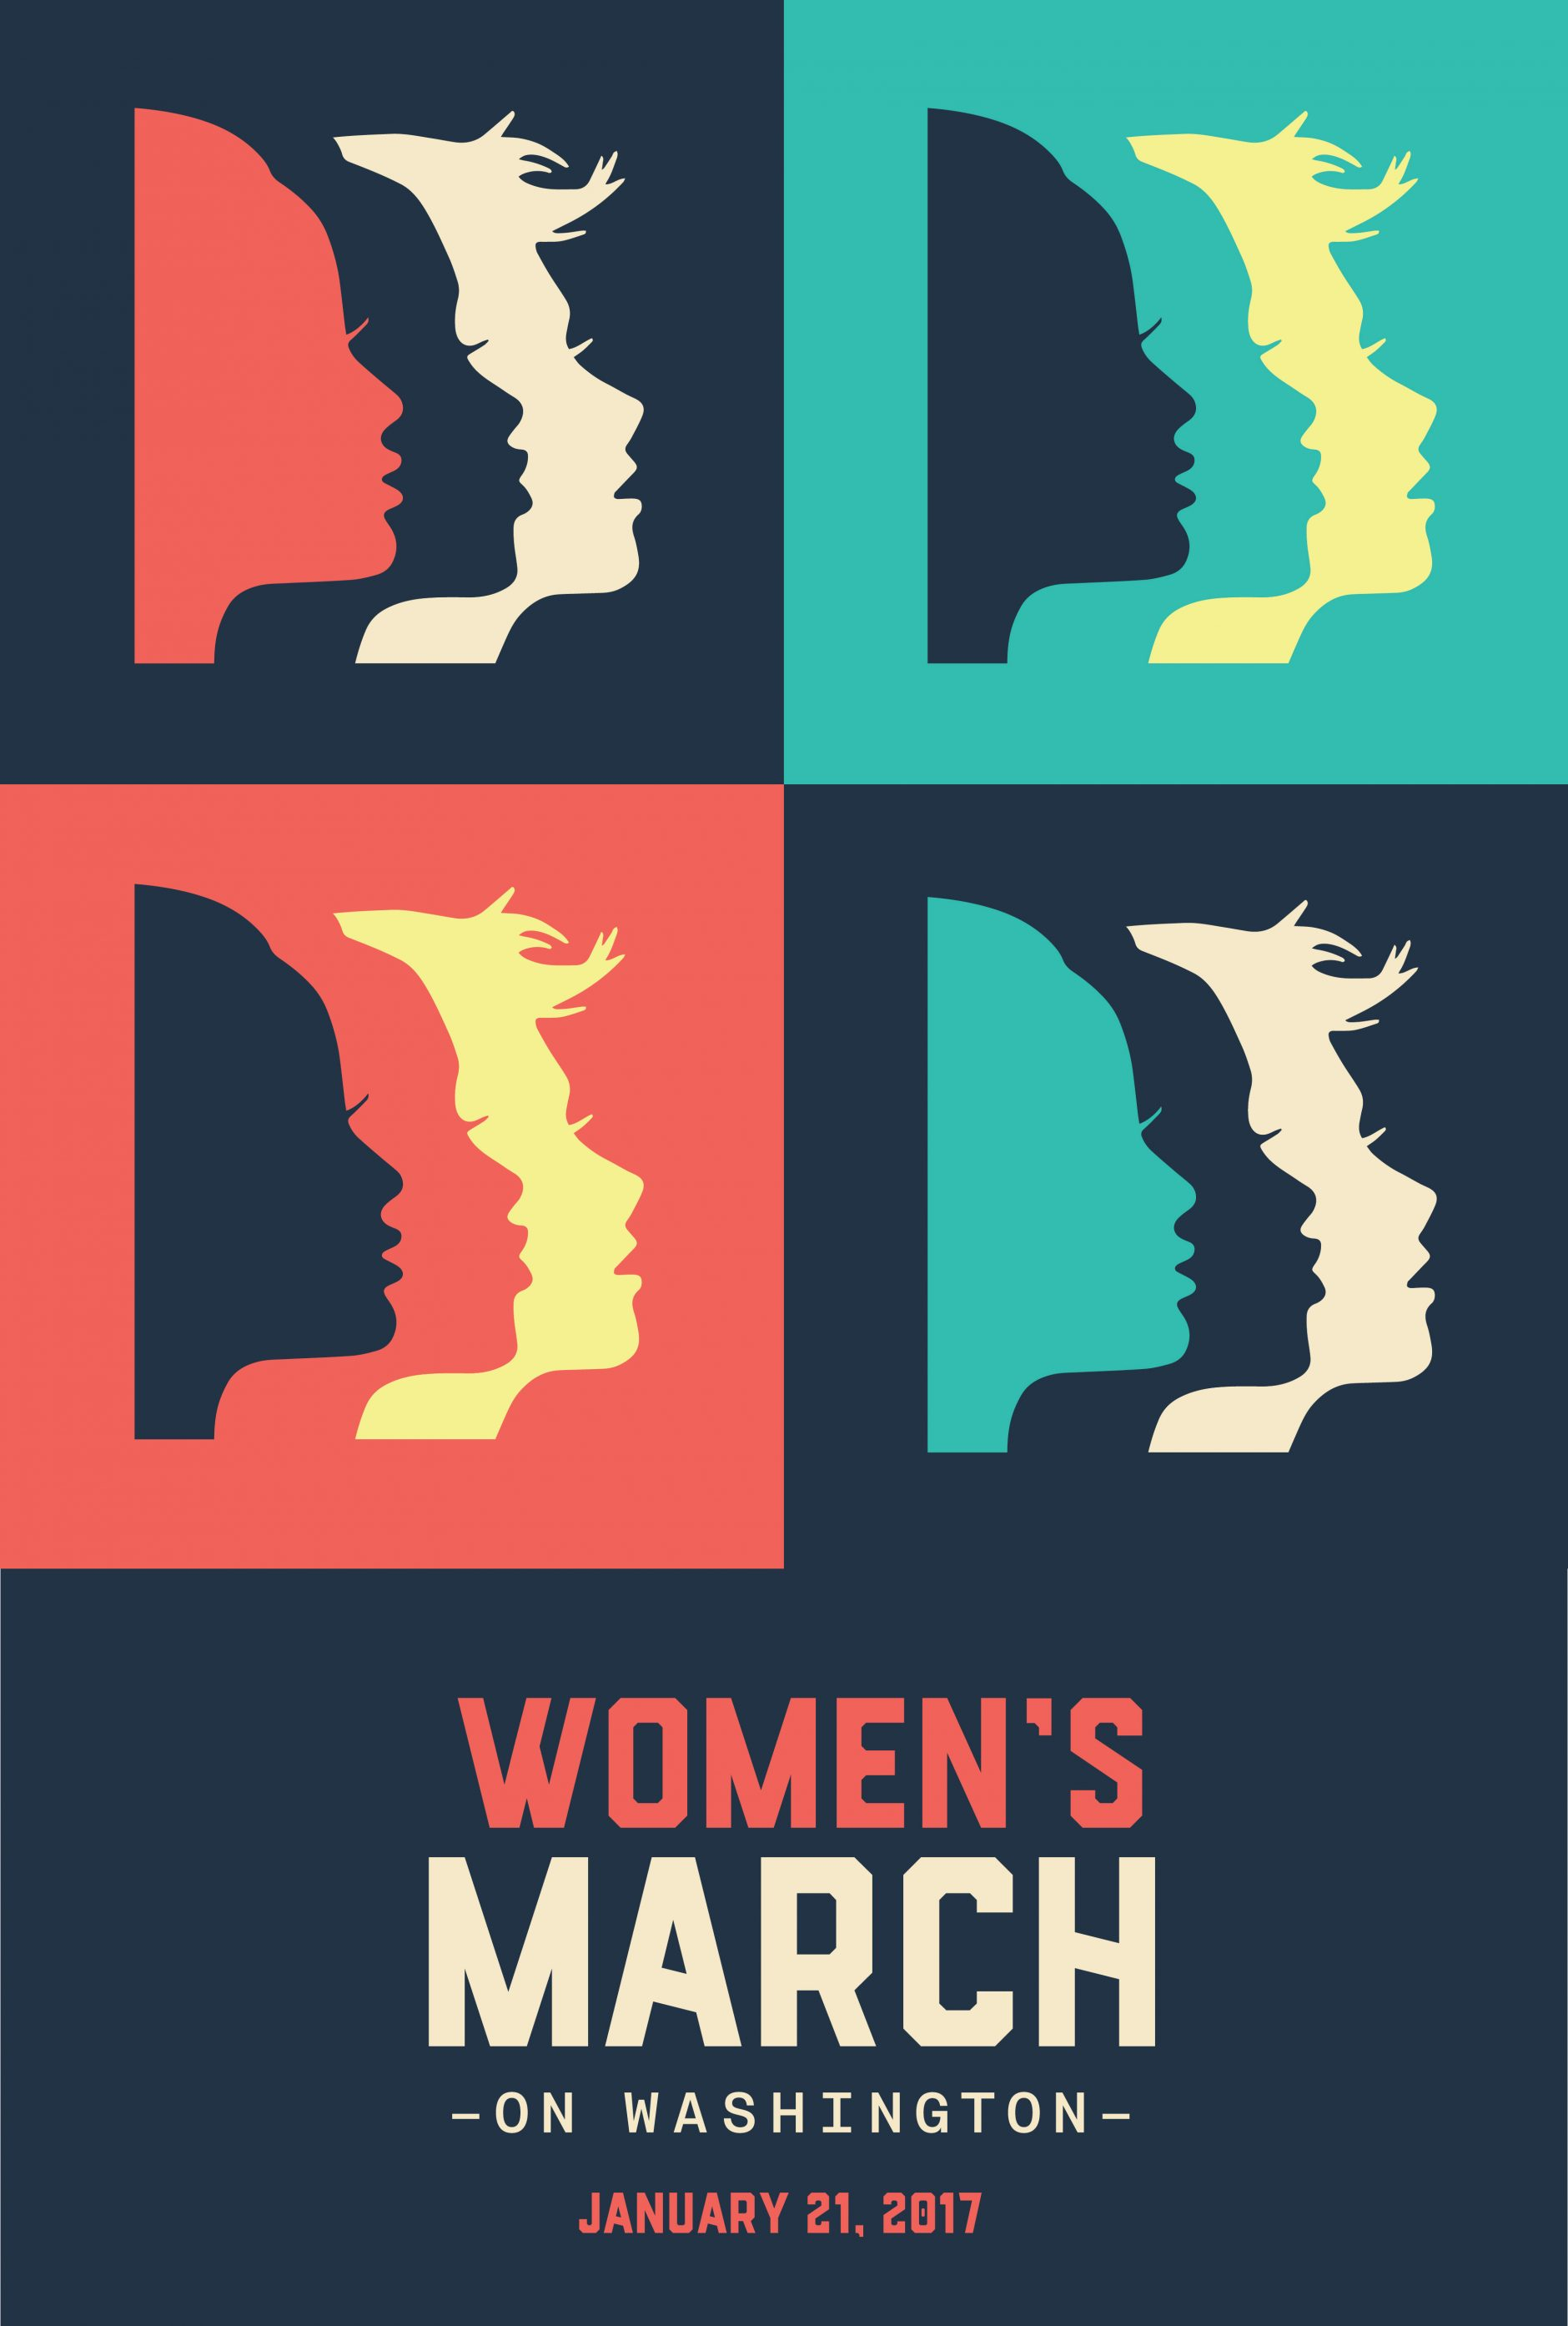 Logodesign, Logo, Design, Women's March, Strack Design, Visual Identity